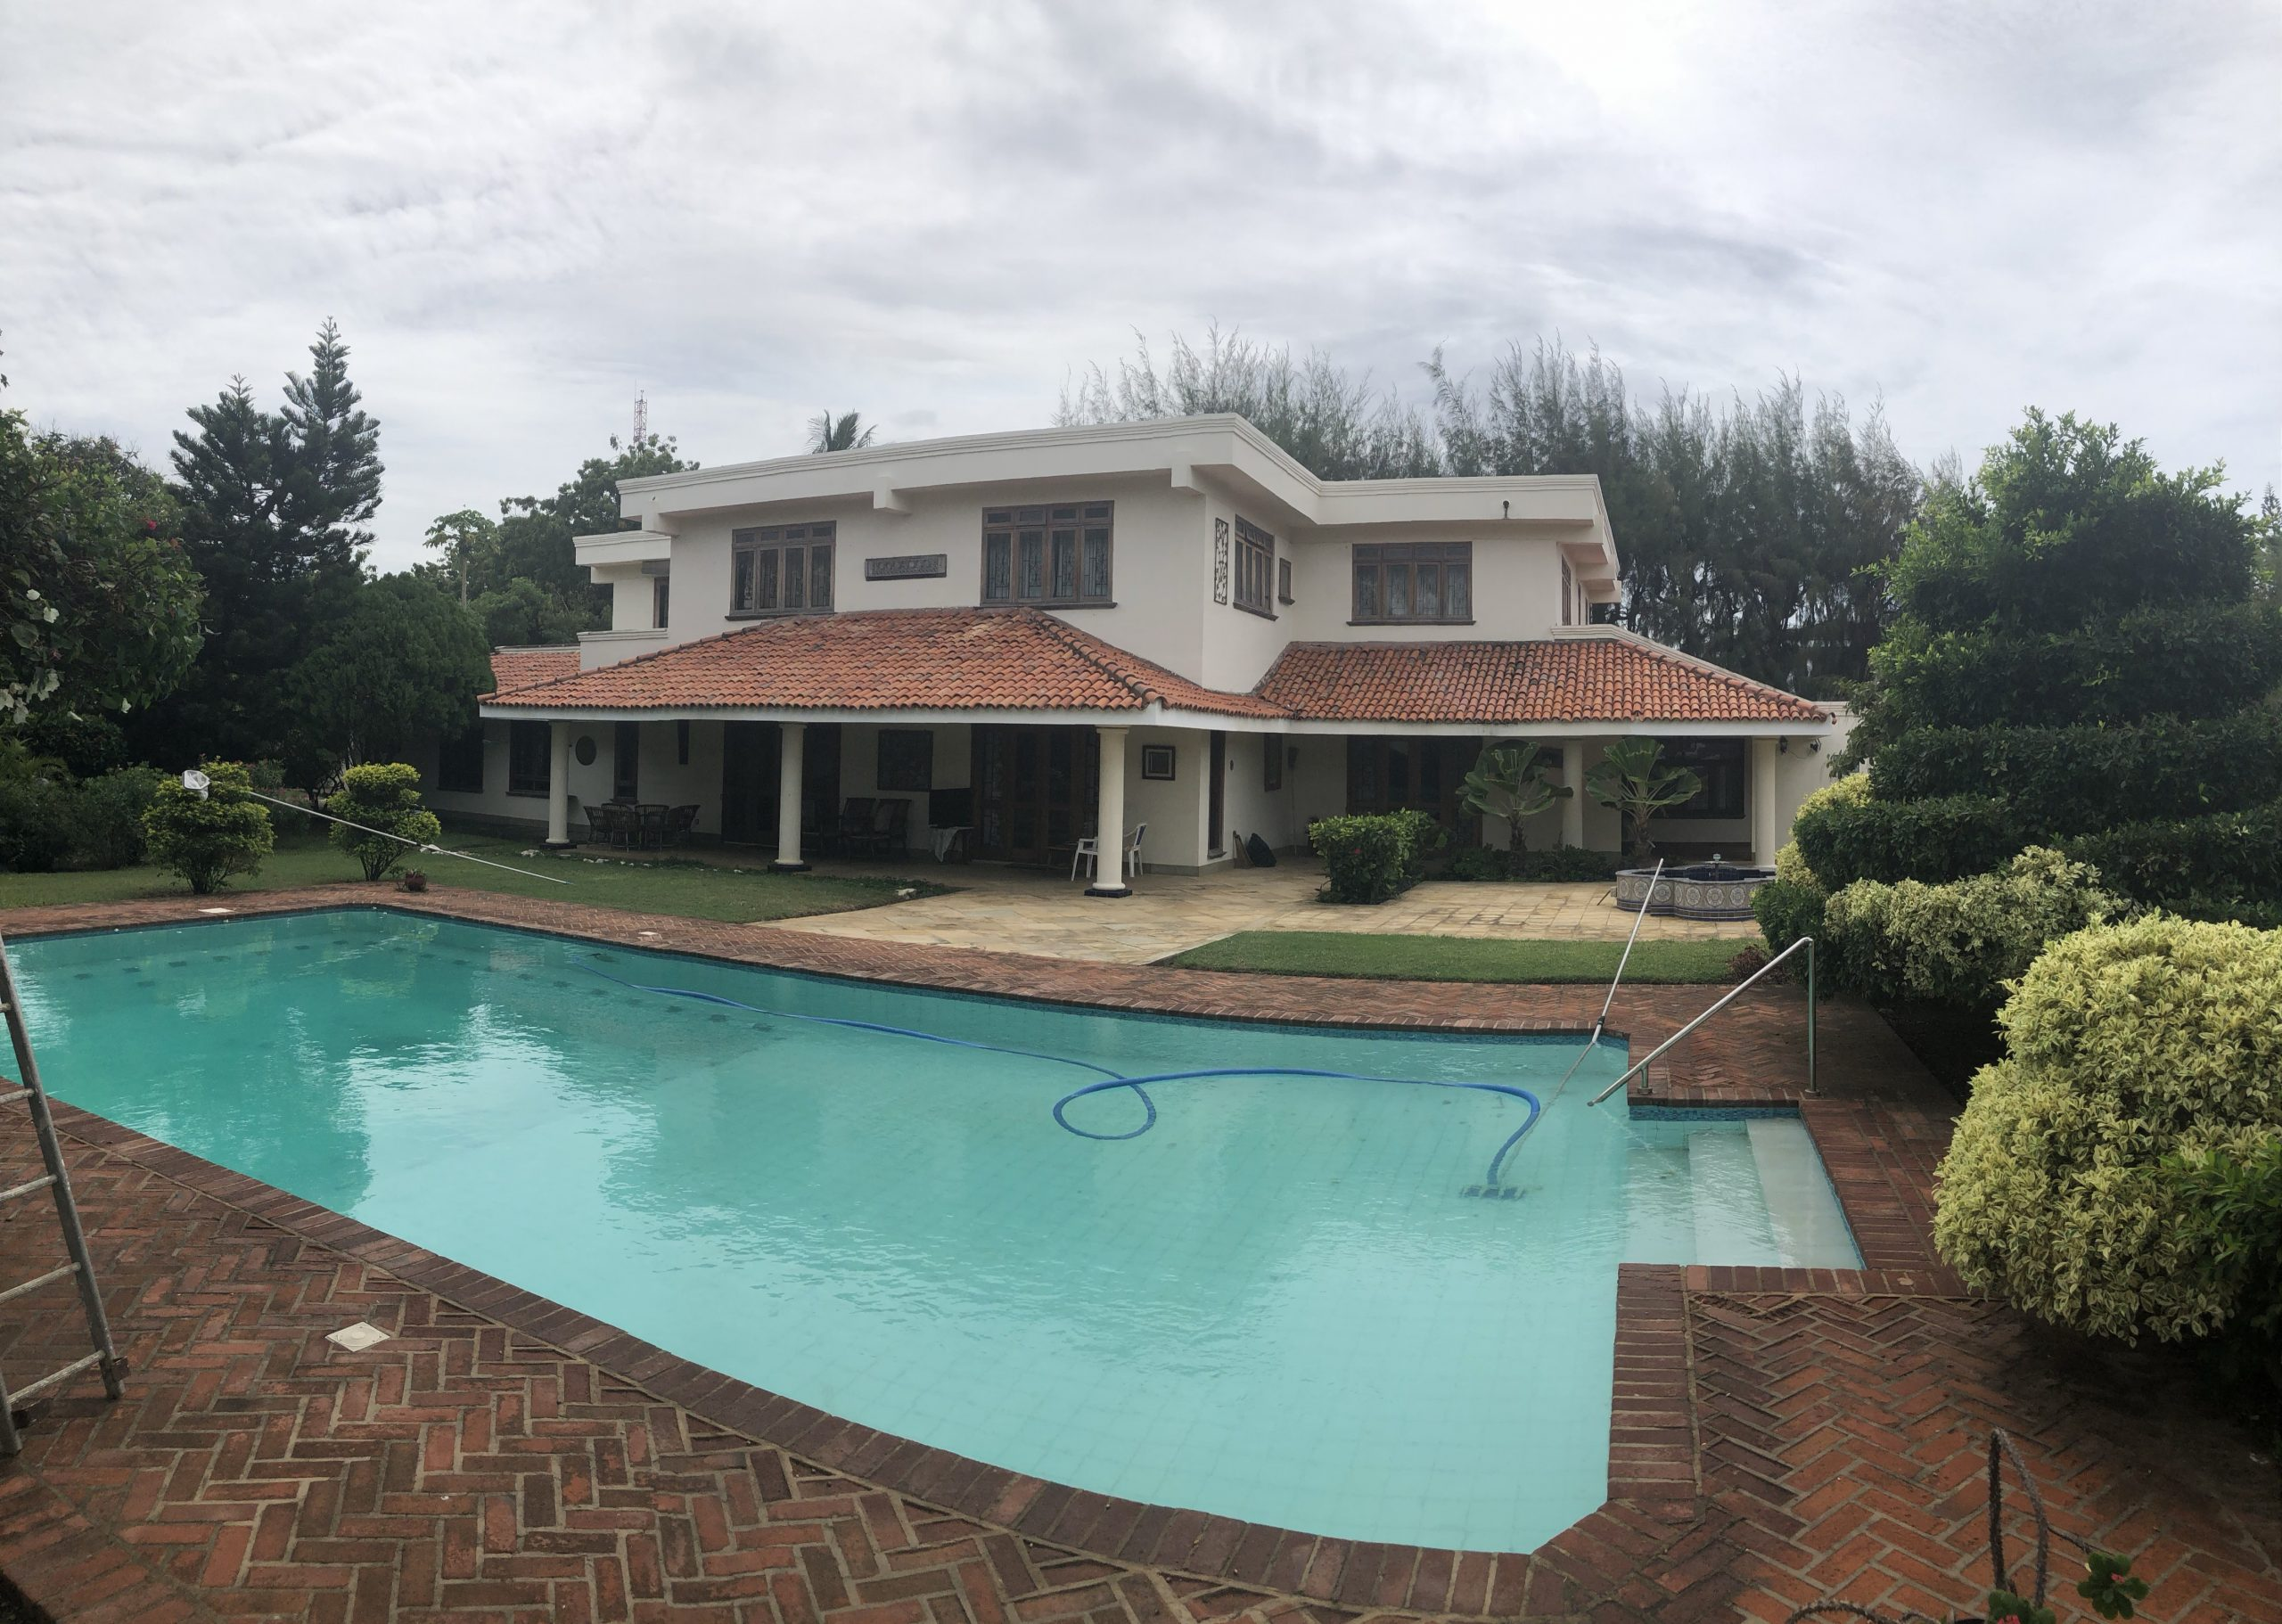 Posh 6br villa house on 1acre plot for sale in Old Nyali, Mombasa